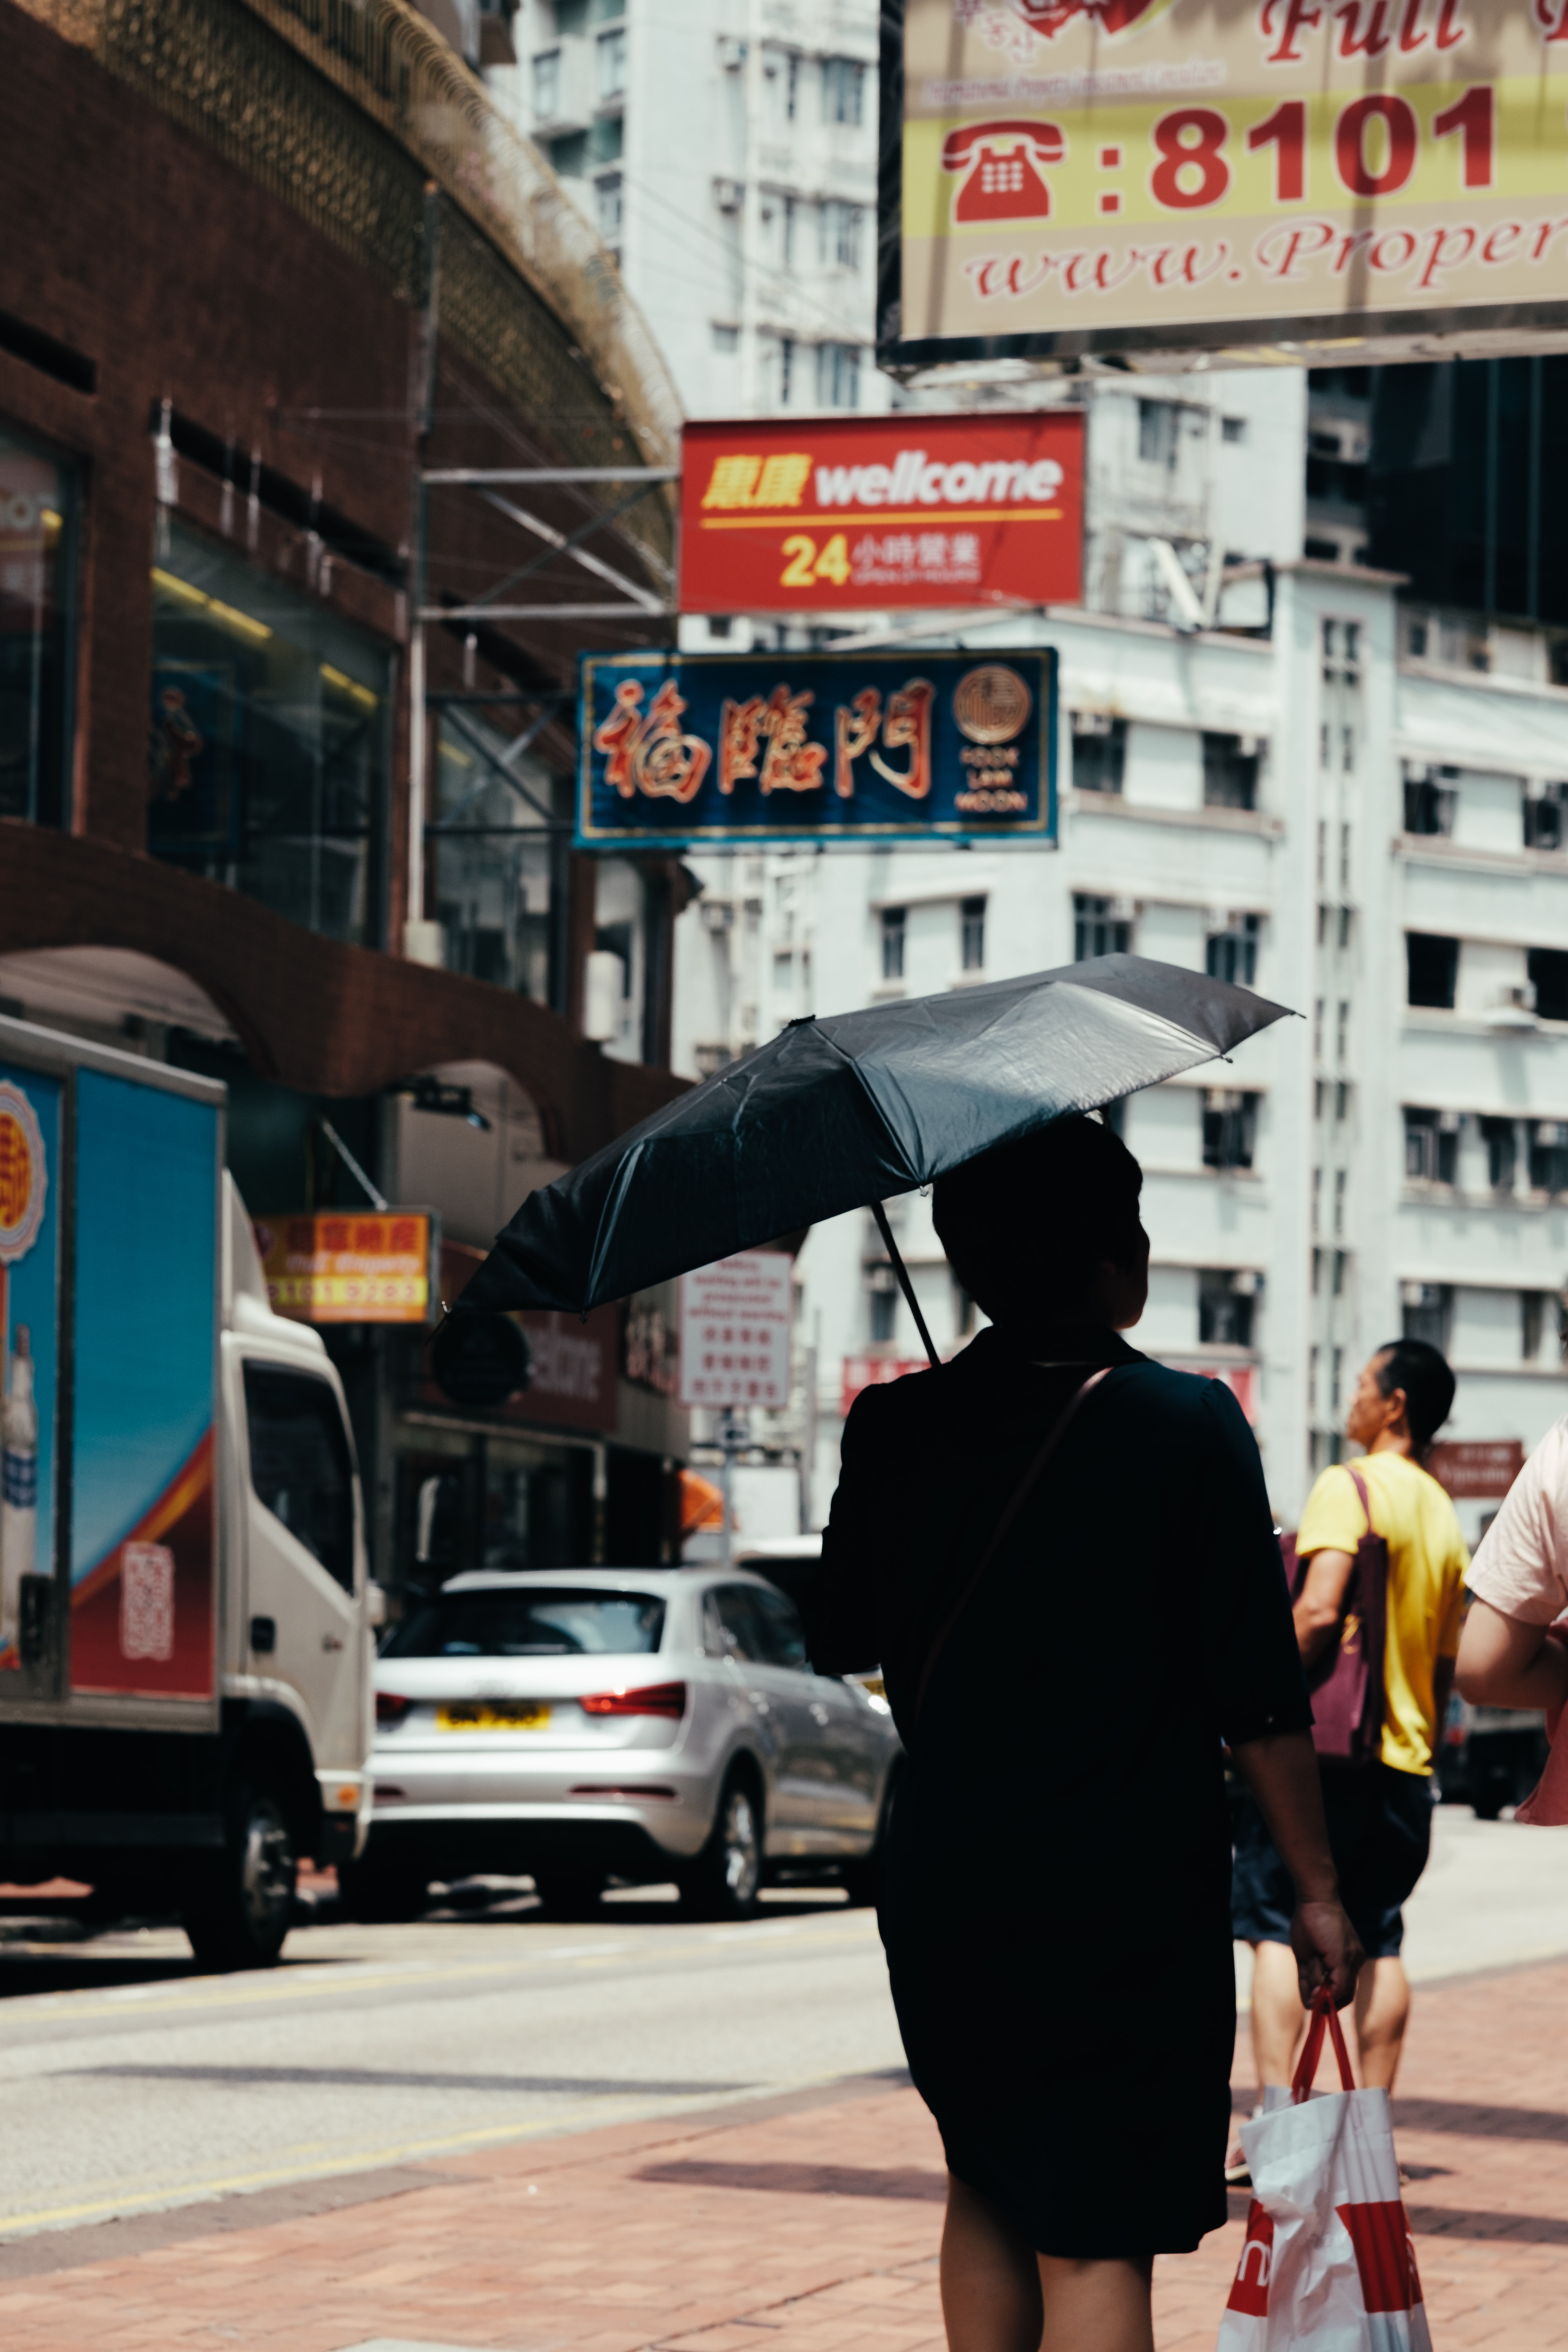 person holding umbrella walking on street